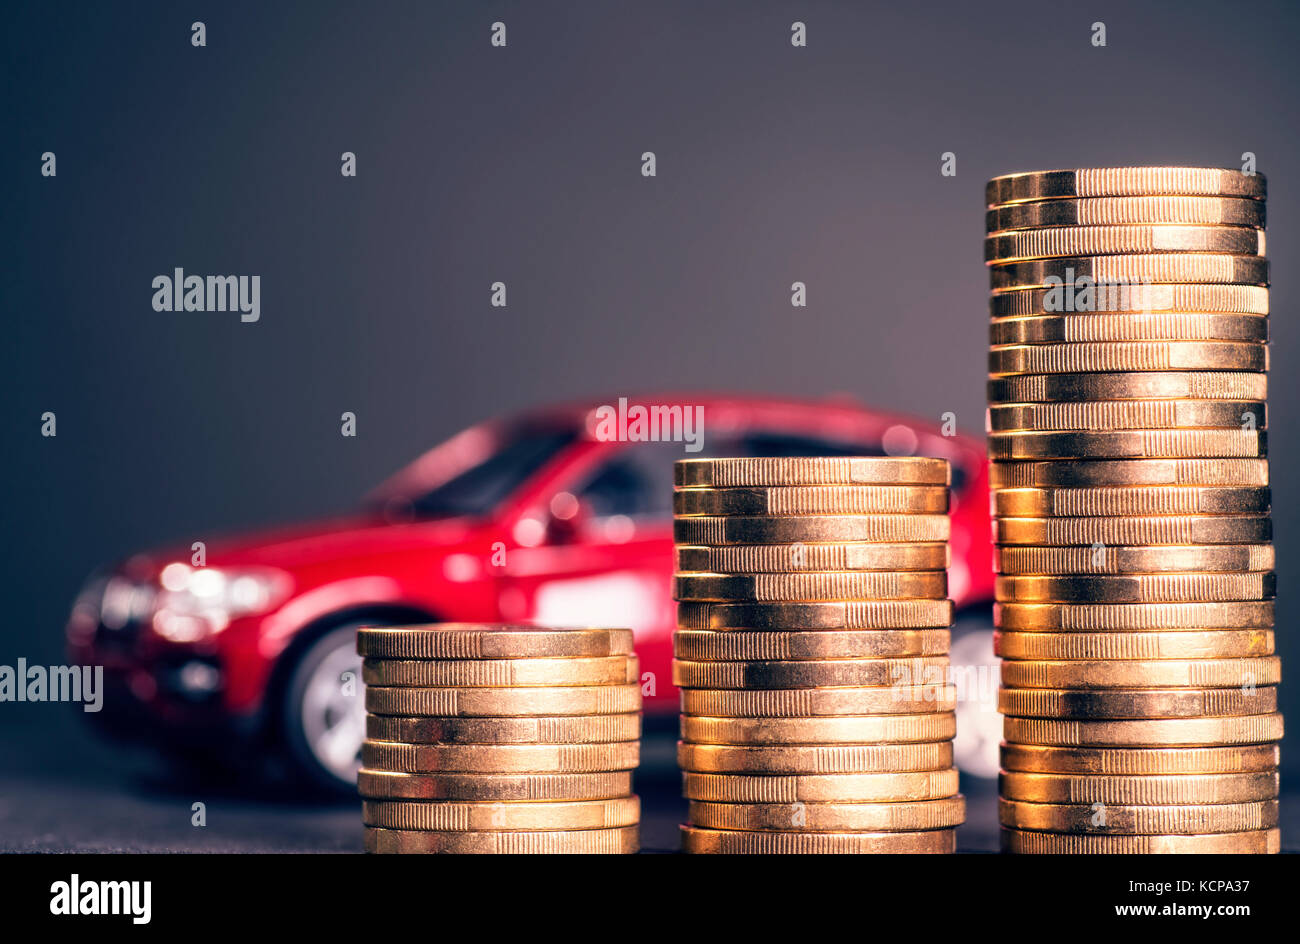 Rising piles of coins and a red car in the background - Stock Image